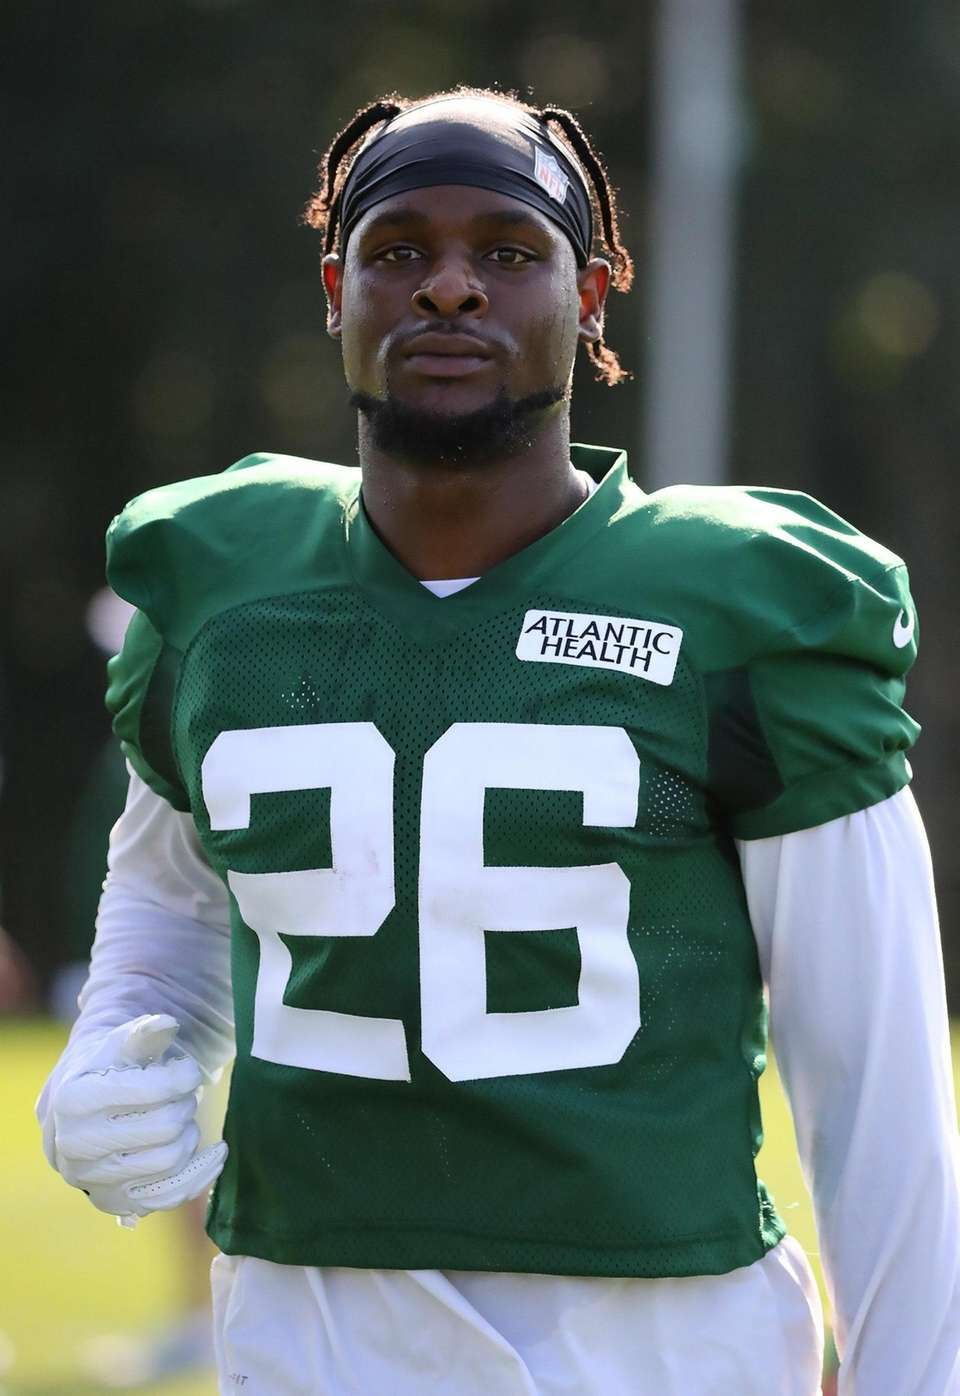 Jets running back Le'Veon Bell takes a break